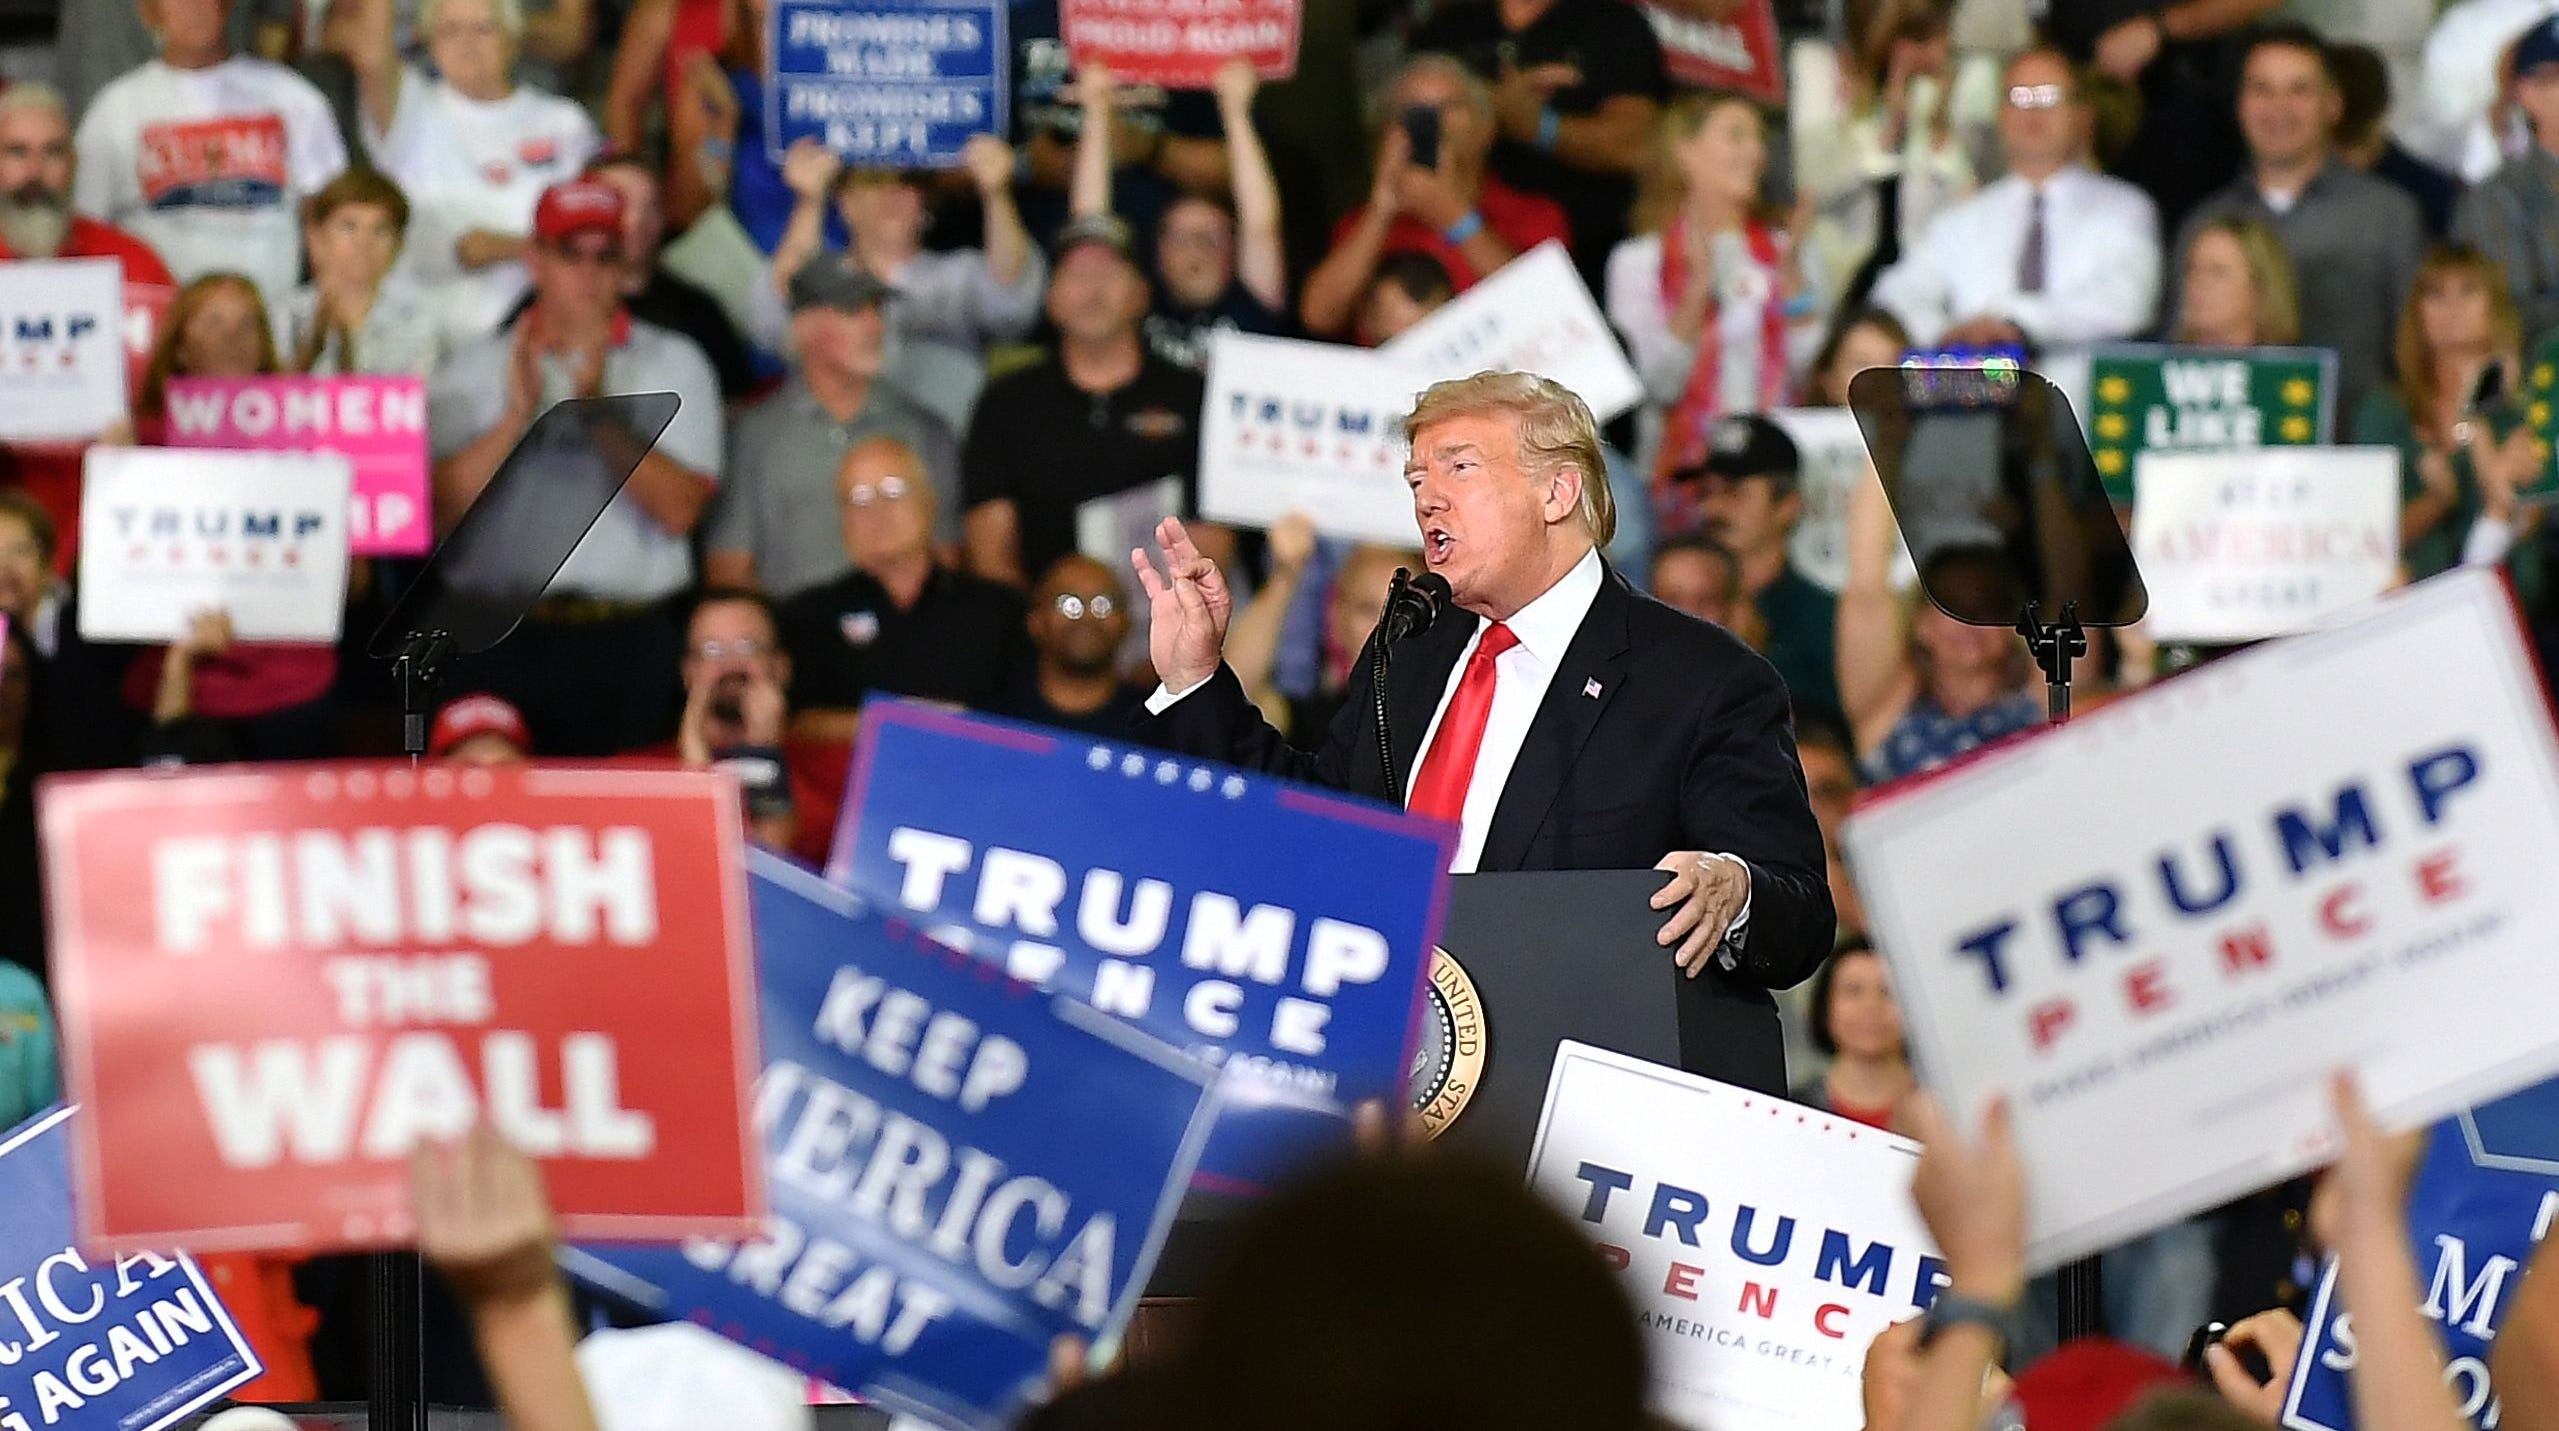 President Donald Trump speaks at a campaign rally in Erie, Pennsylvania